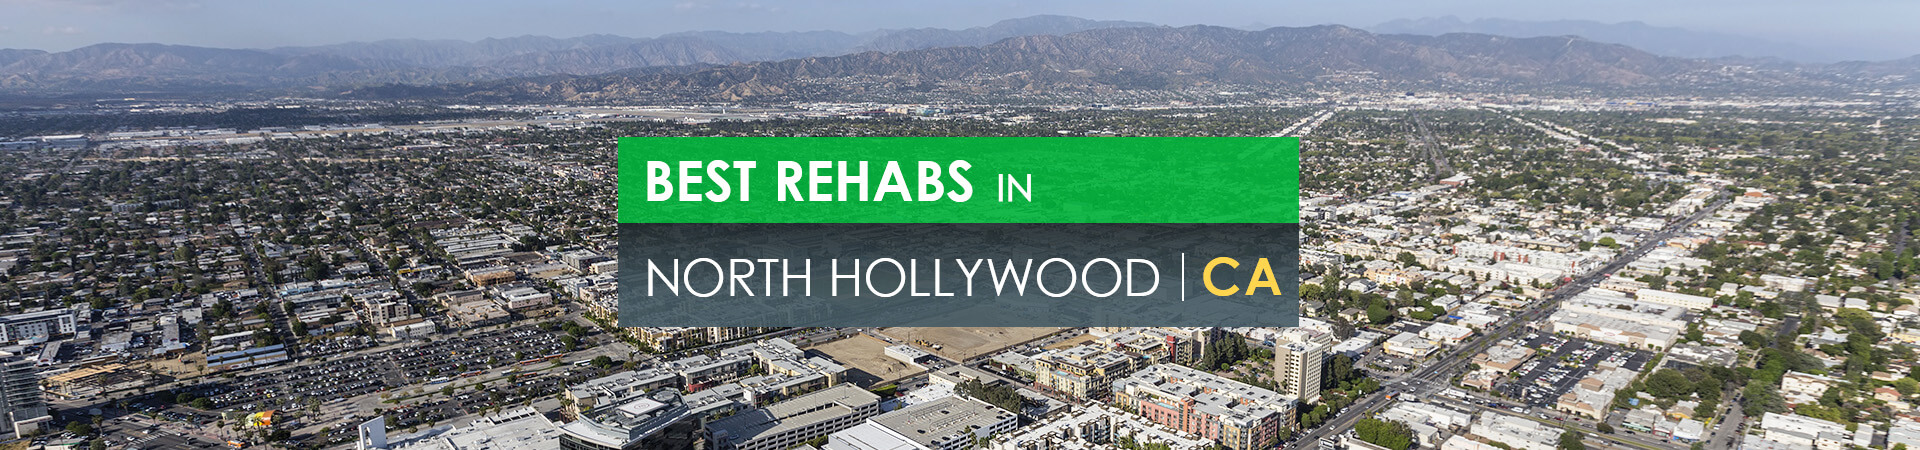 Best rehabs in North Hollywood, CA